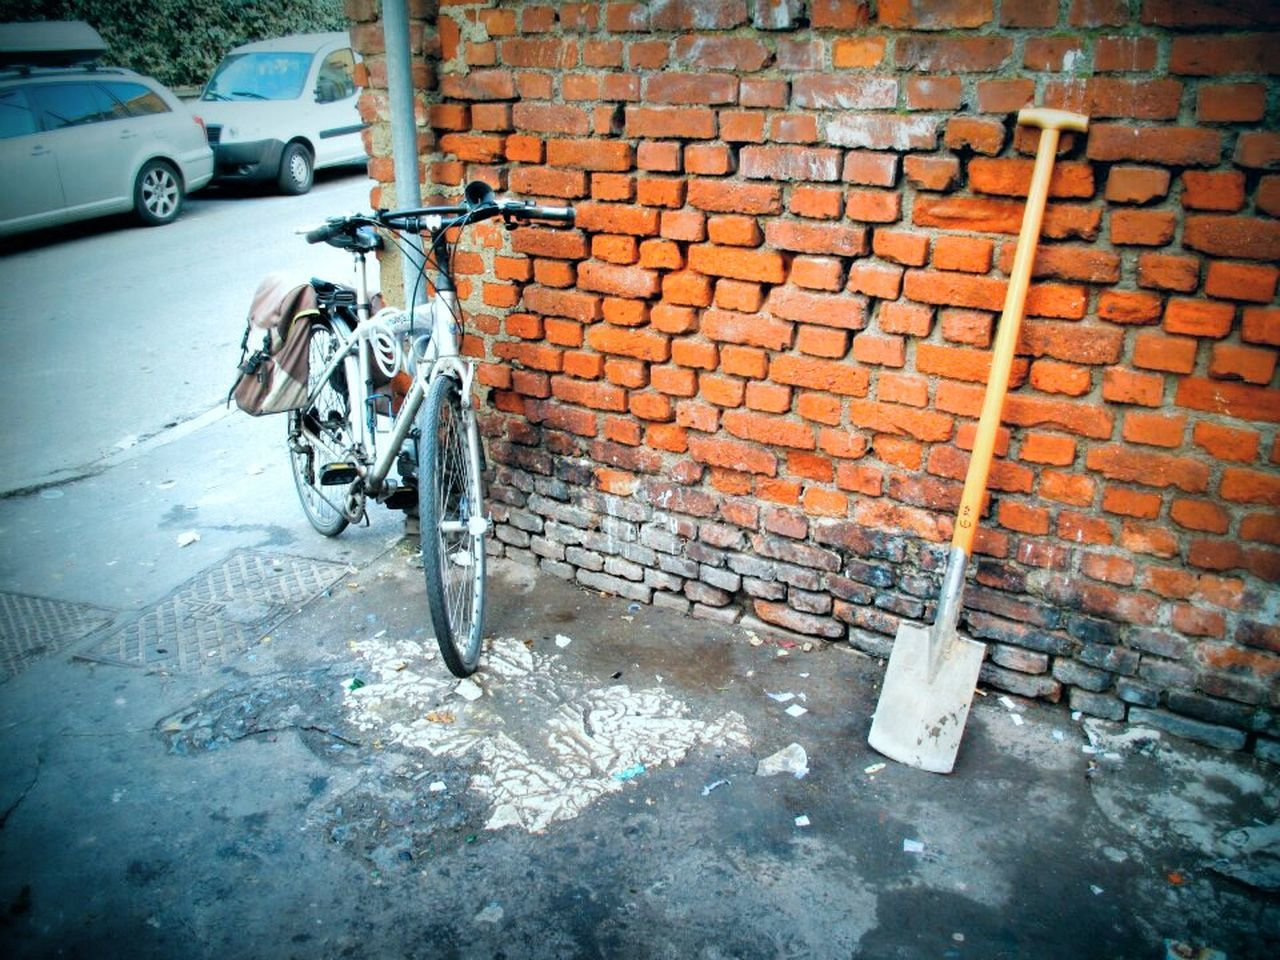 Urbanexploration Hinterland Urbanscape Wall Outdoor Bicycle Guerrilla Gardening Urban Gardening Garden Tools Urban Scene FreeTime Enjoying Life No More Cars